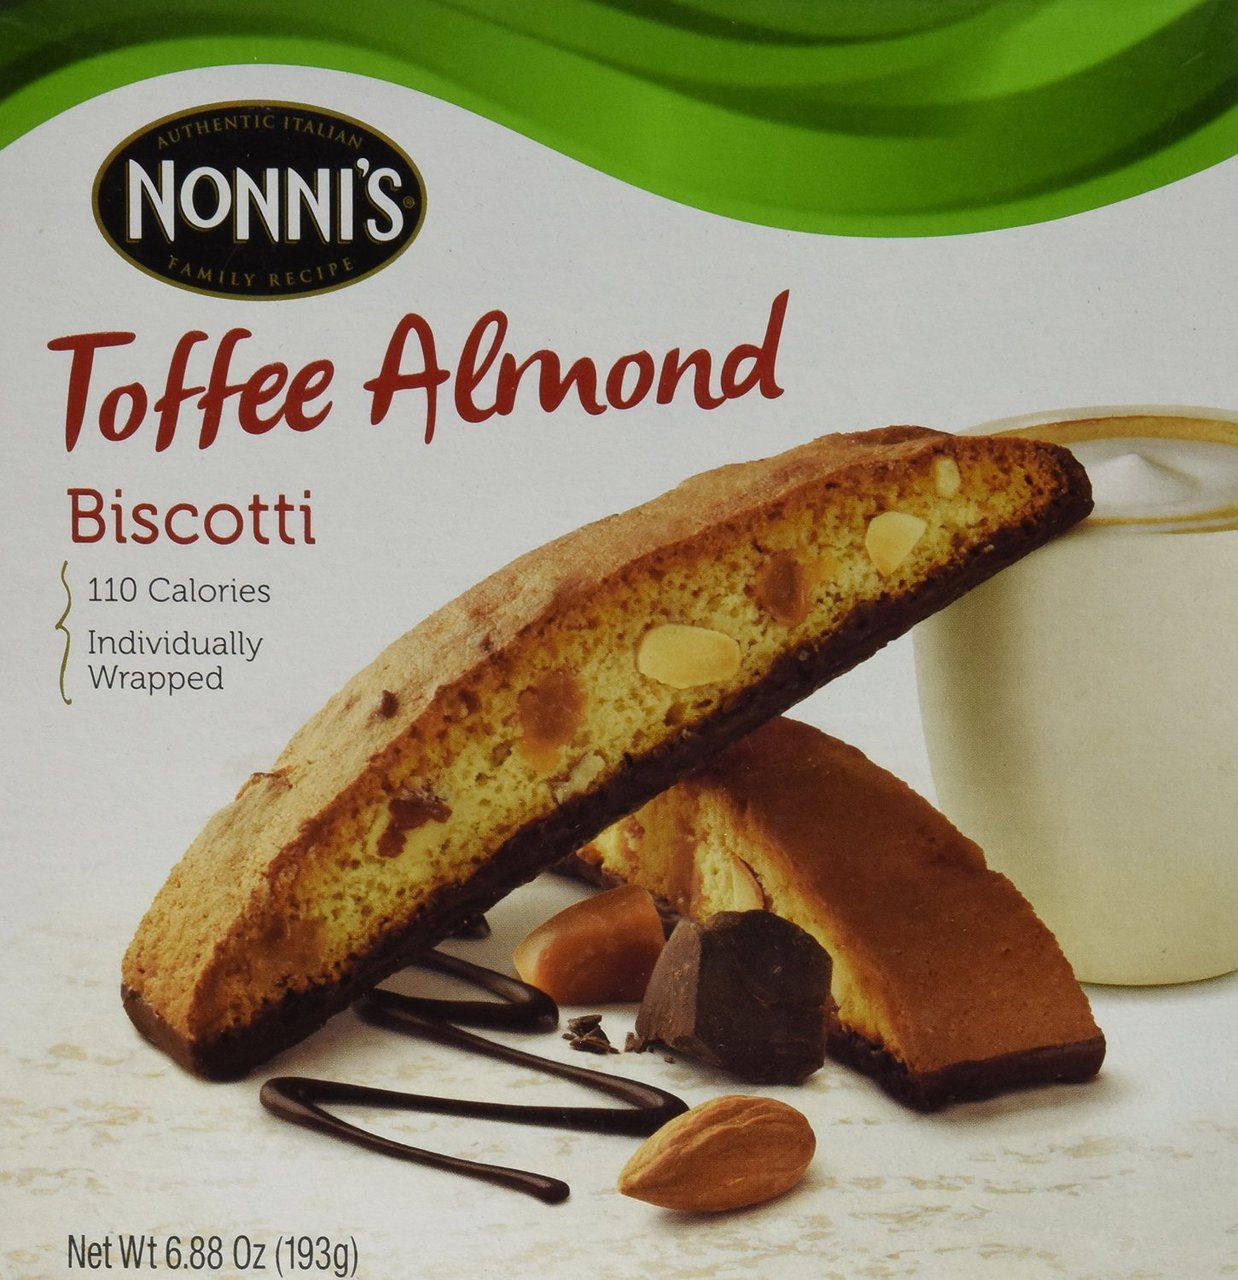 12 PACKS : Nonni's Toffee Almond Biscotti Cookies 6.88 oz by